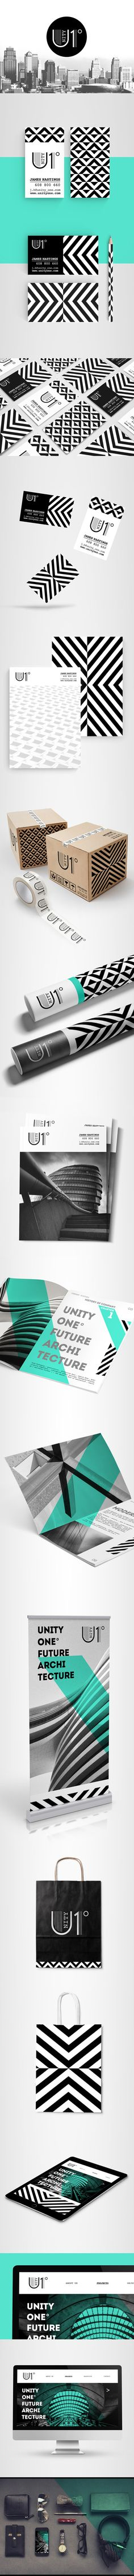 Identity concept created for modern architecture studio.